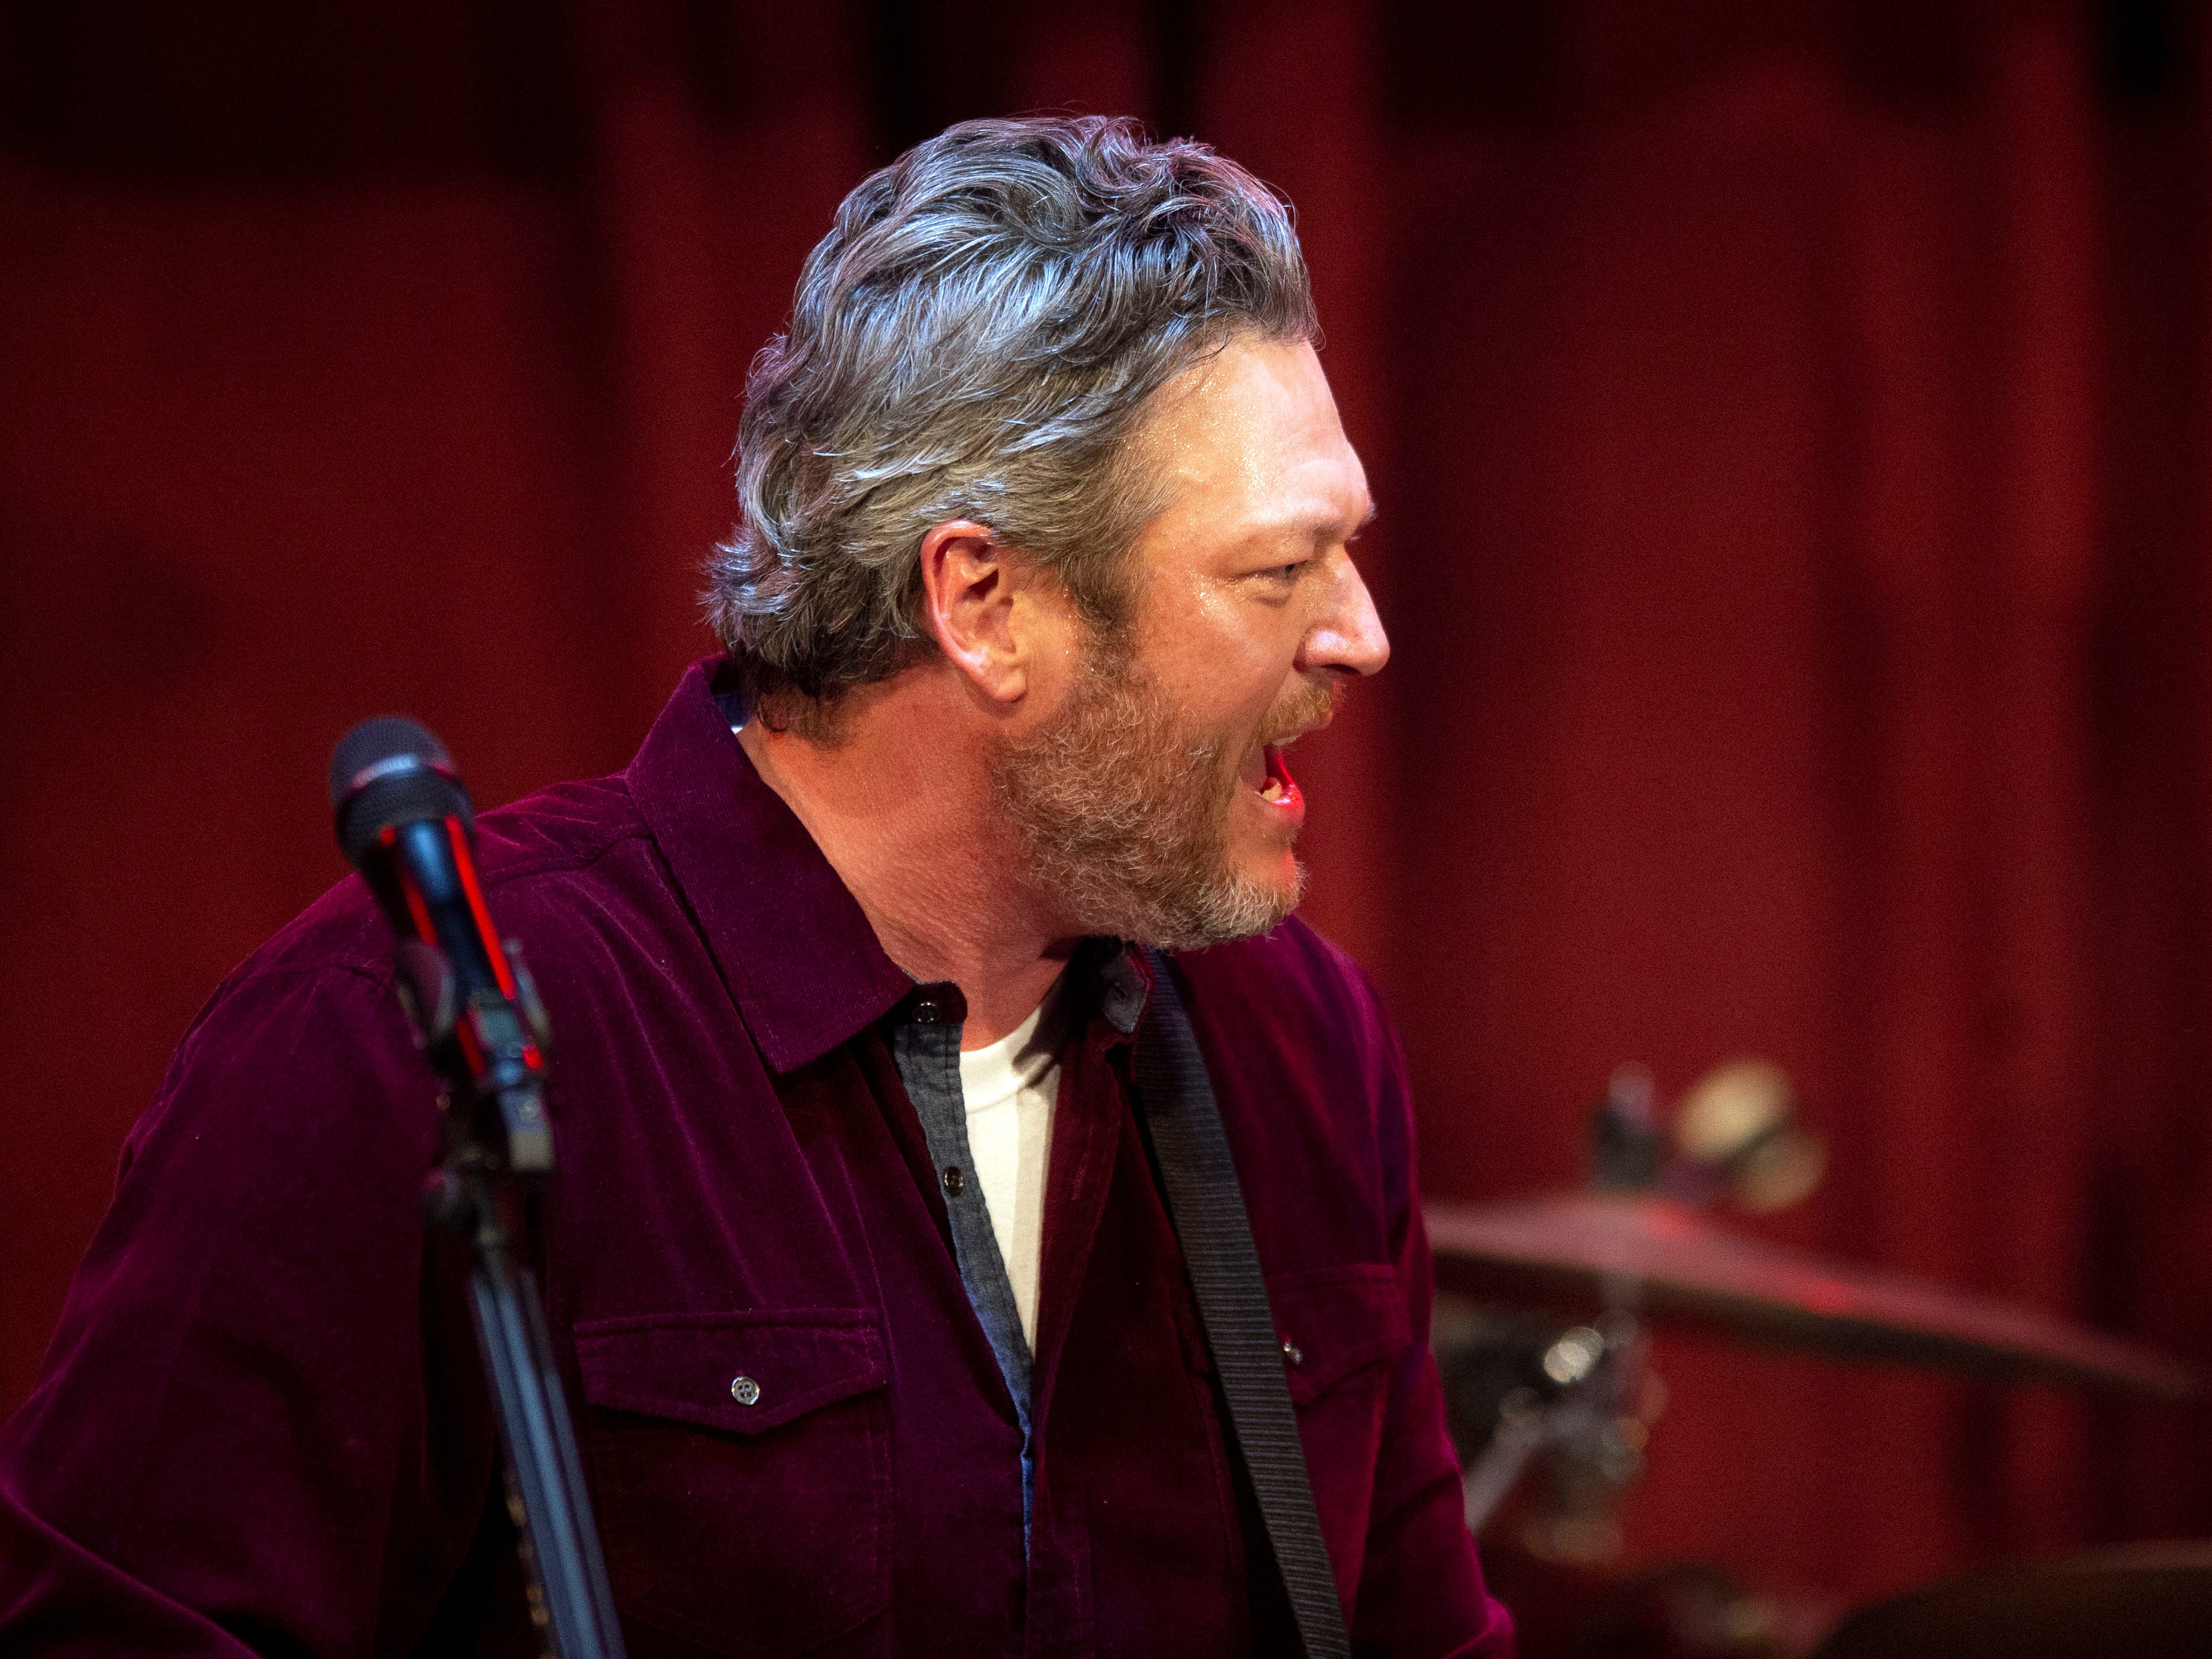 Blake Shelton performs at the grand opening of Ole Red Gatlinburg on Wednesday, March 13, 2019.